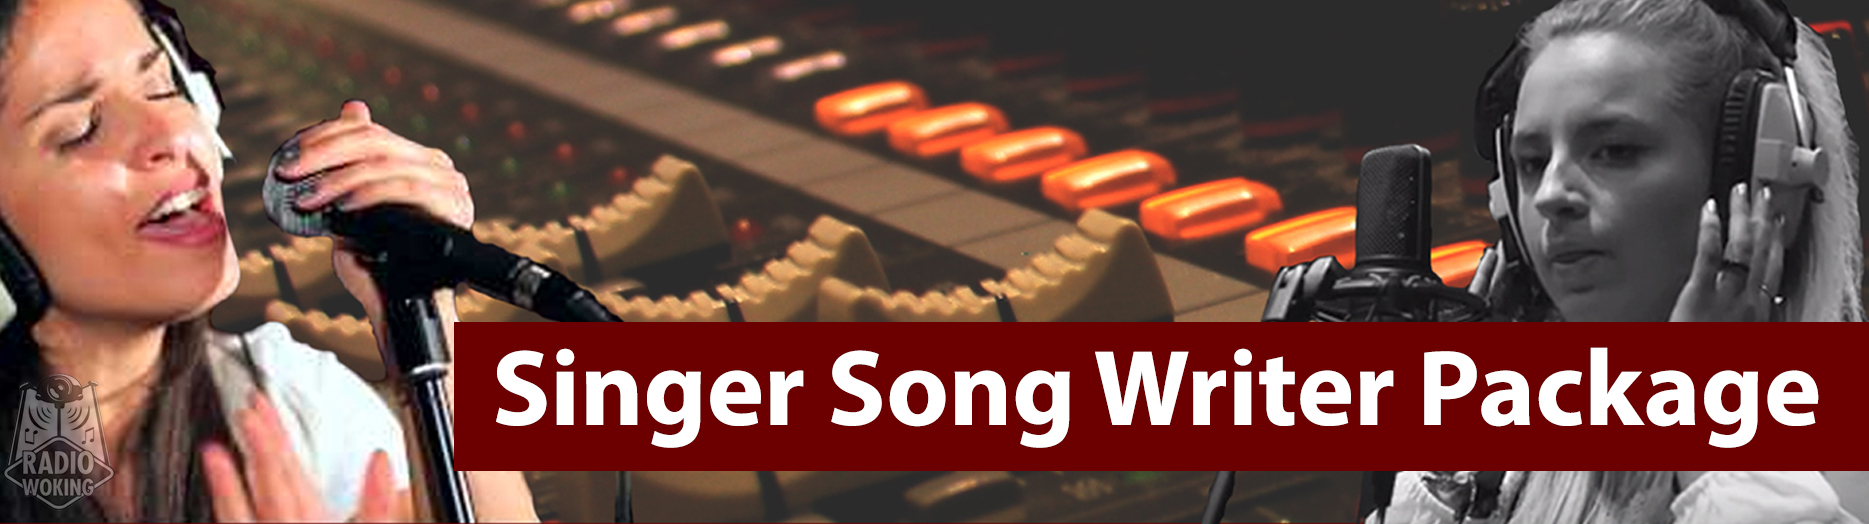 singer-song-writer-banner-1